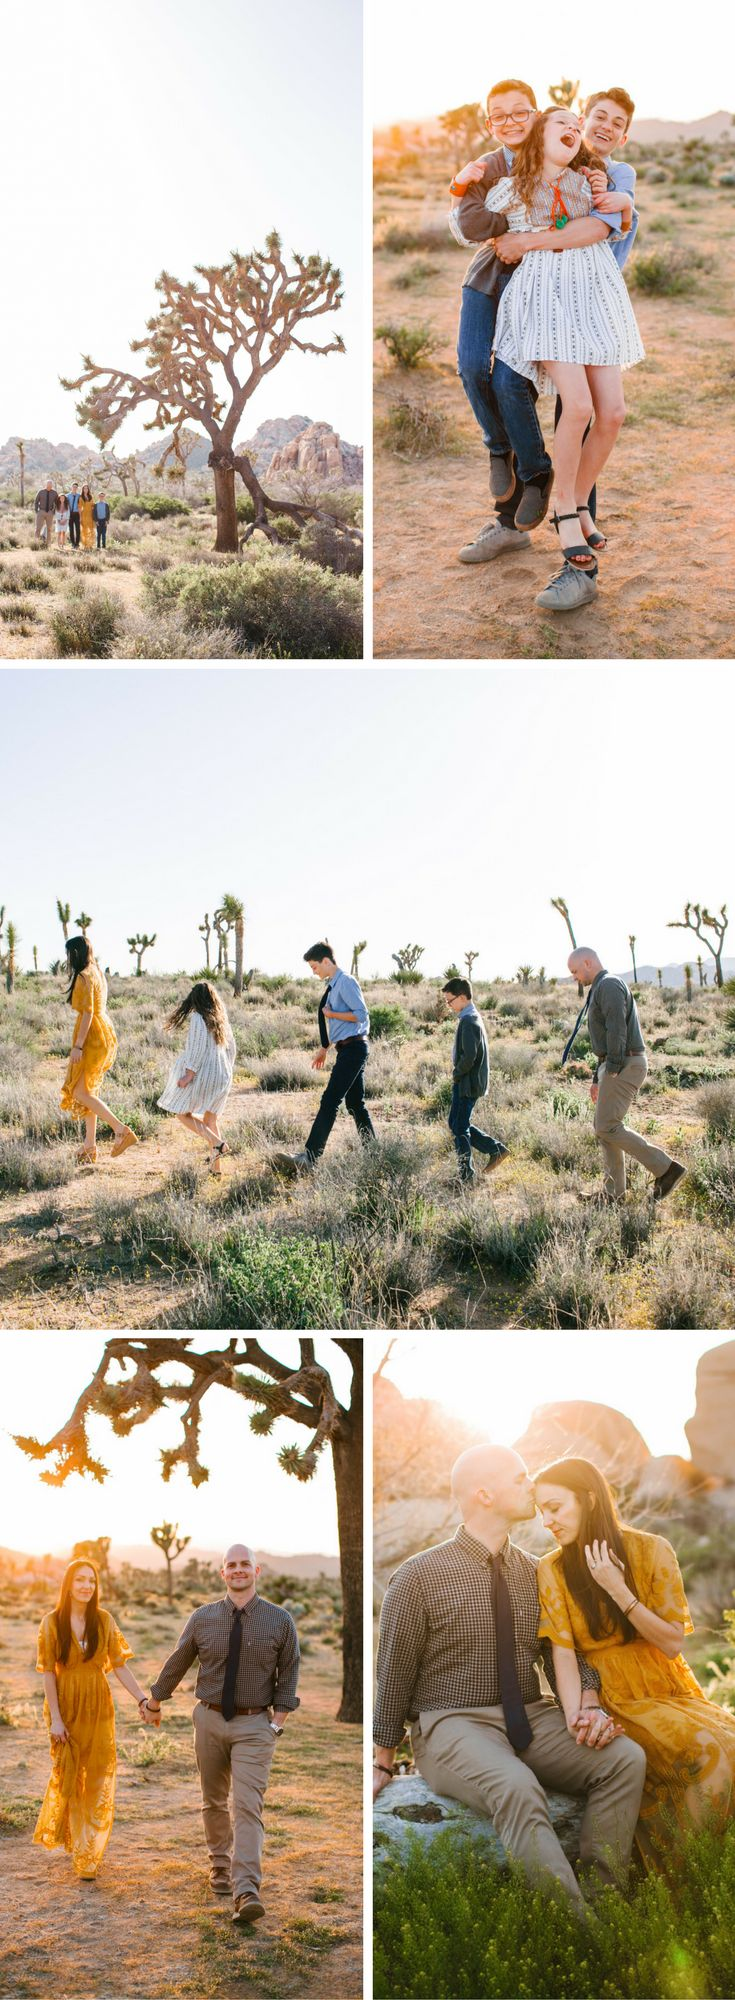 Desert Bohemian Family Photo Shoot in Joshua Tree National Park, California